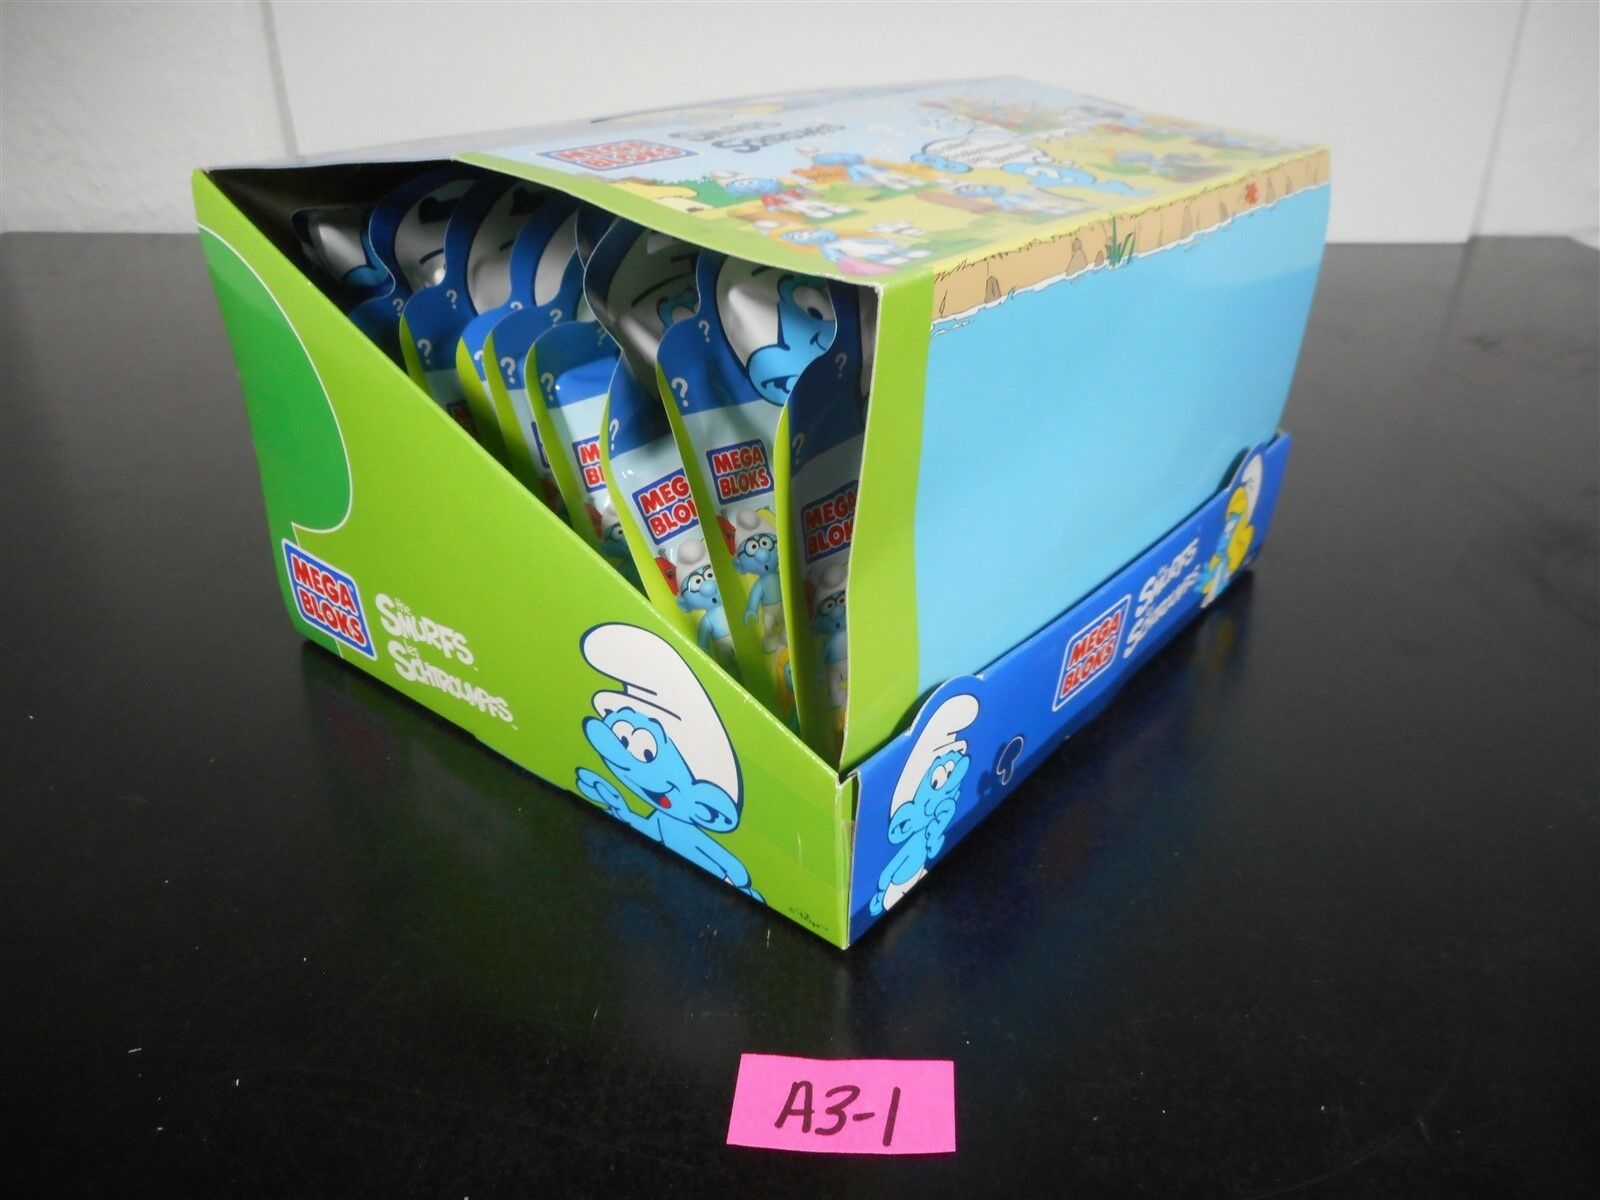 NEW    CASE OF 22 THE SMURFS MEGA BLOKS 10757 MYSTERY FIGURES & DISPLAY BOX A3-1